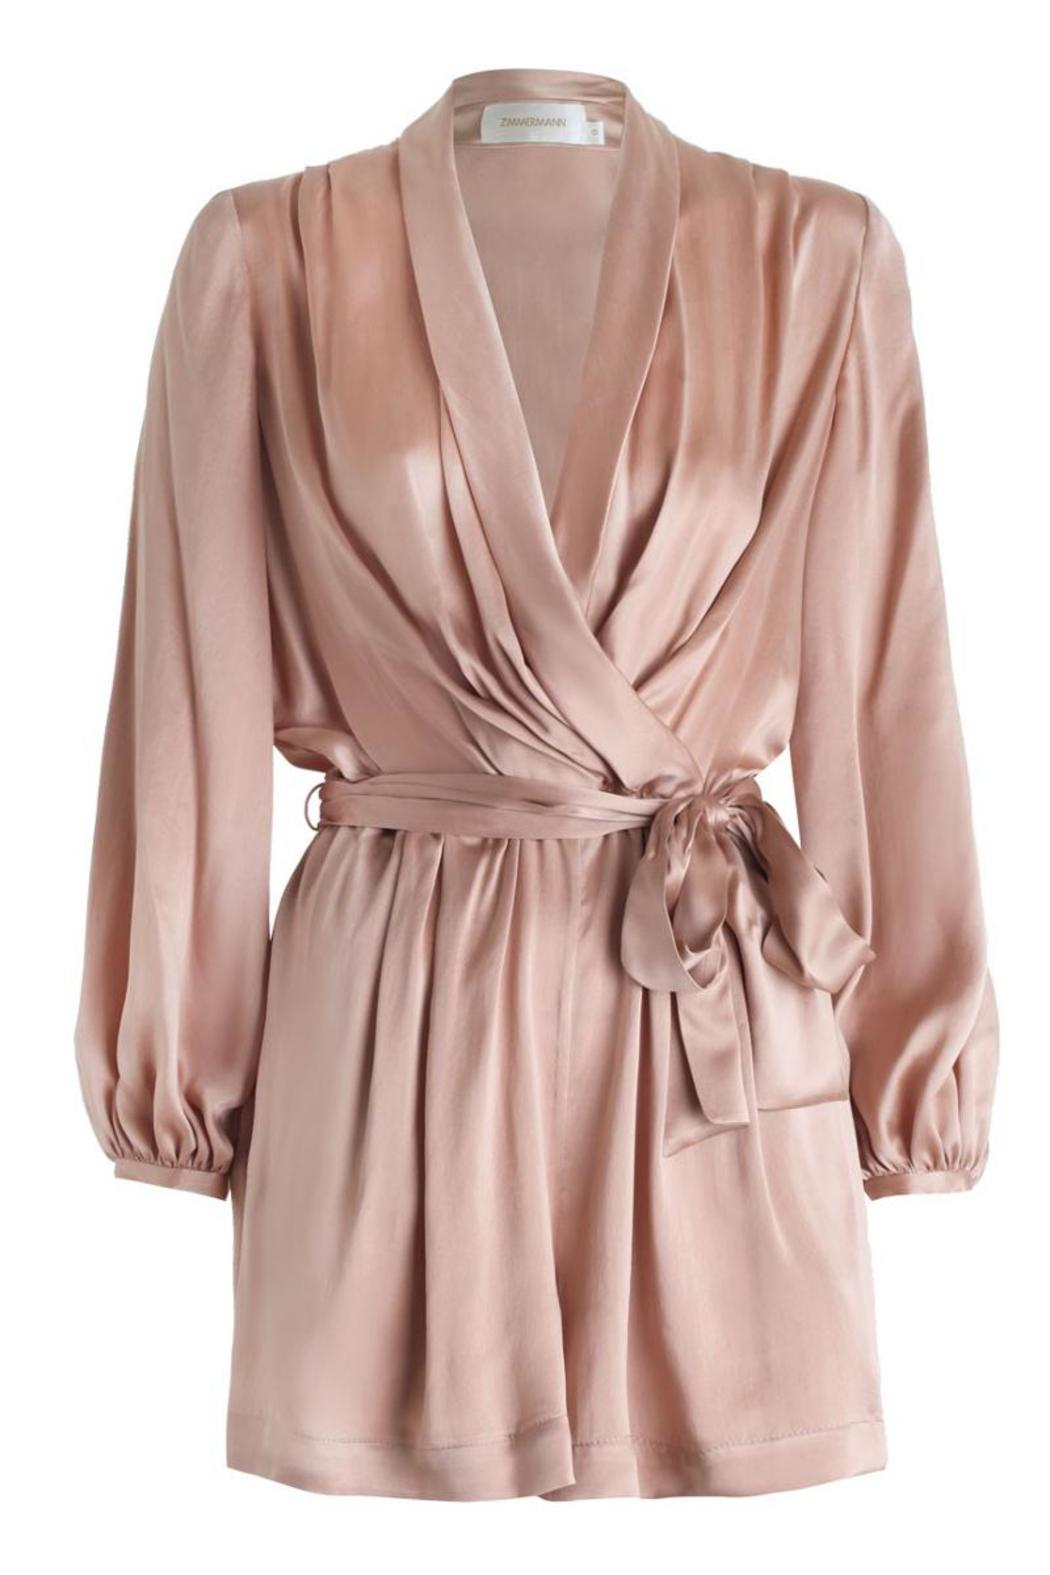 10a056ef3ec Zimmermann Sueded Silk Playsuit from New Jersey by Hartly — Shoptiques